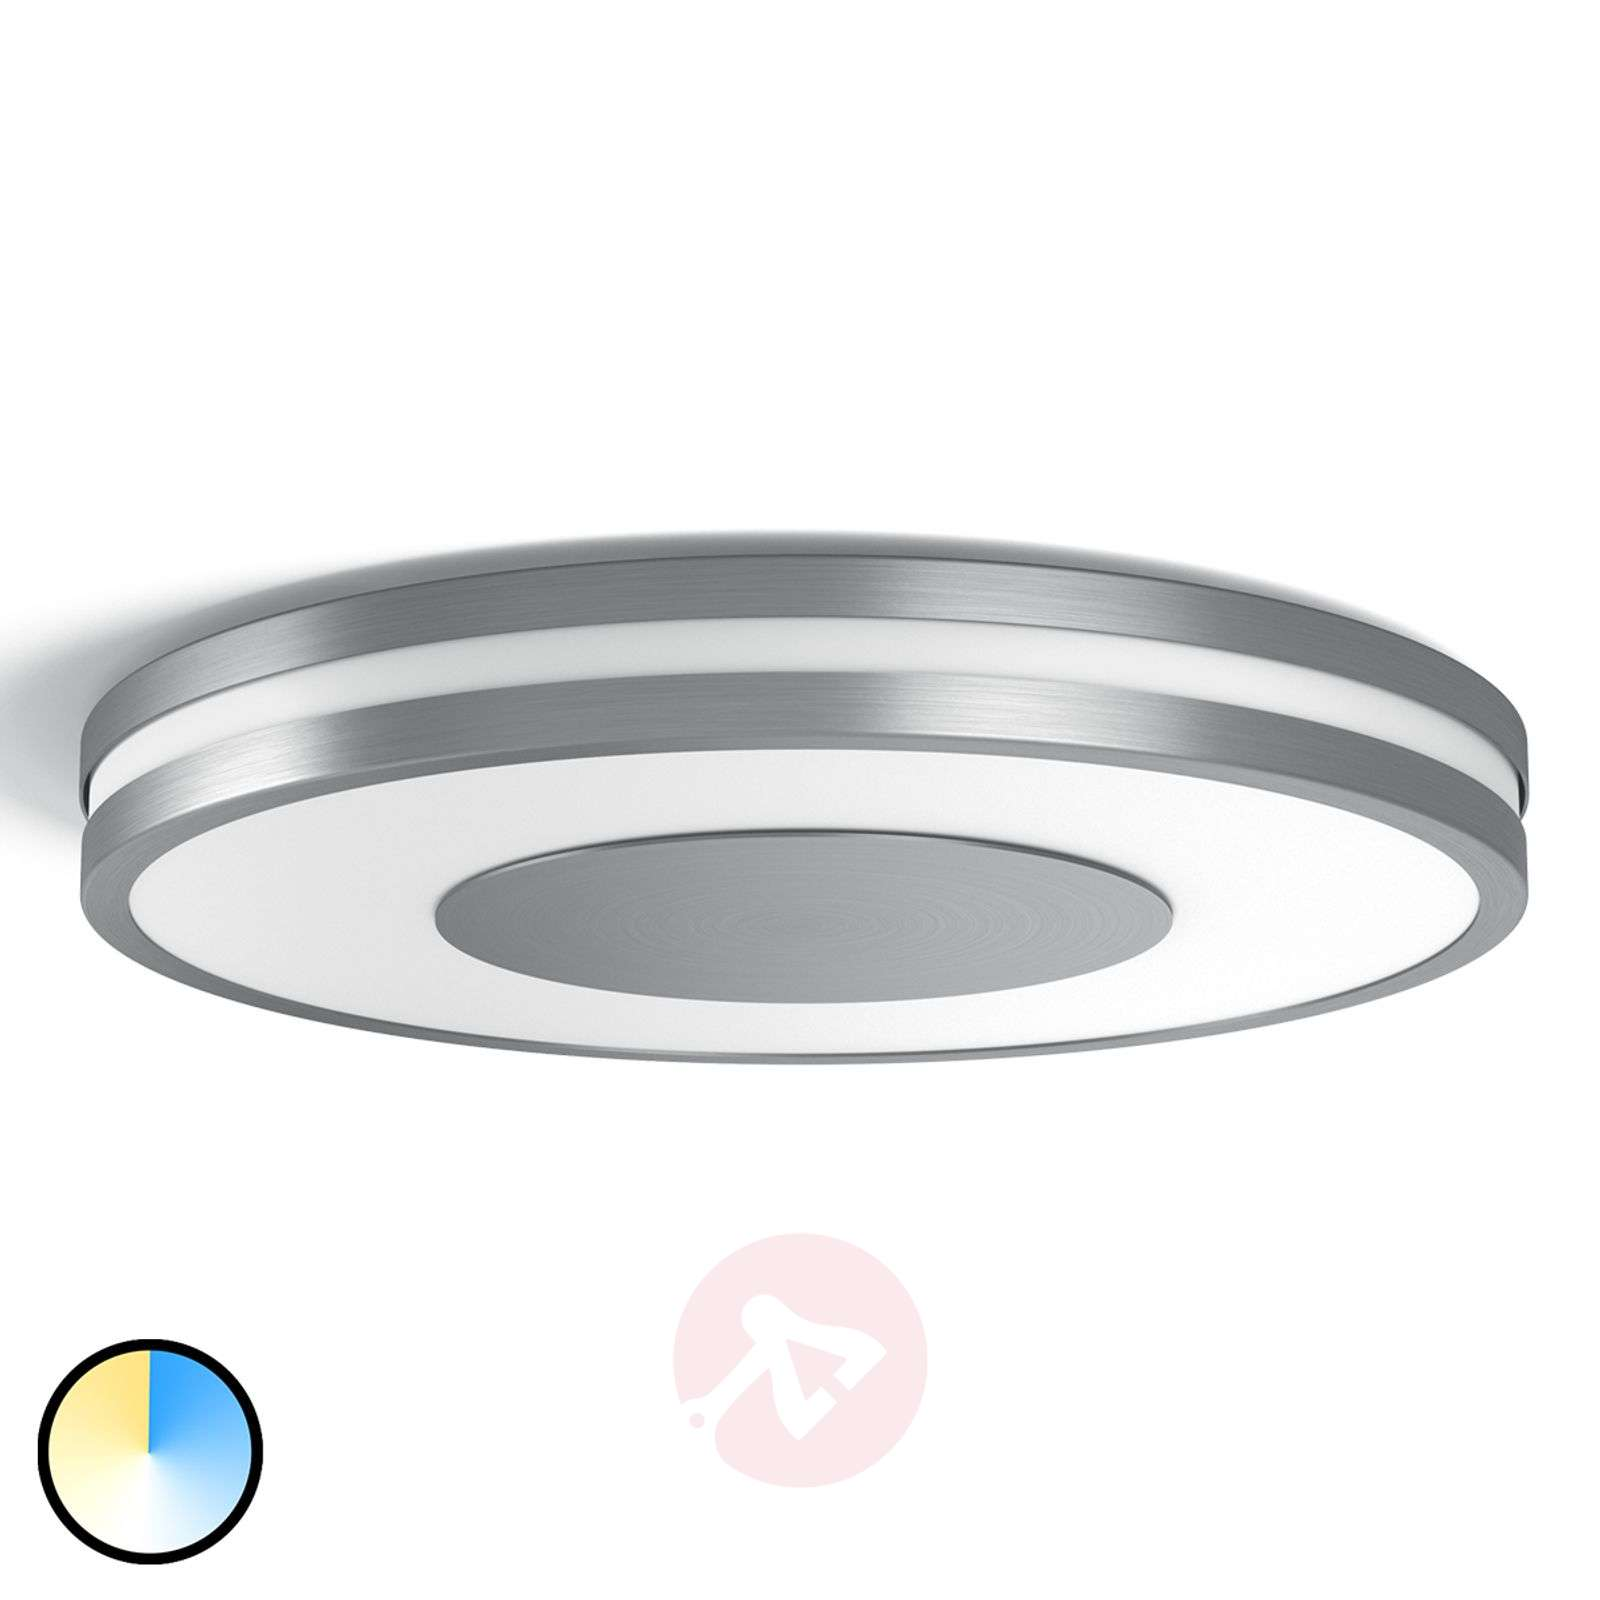 Plafonnier Hue Led Variateur Philips Avec Being OiTPukXZ